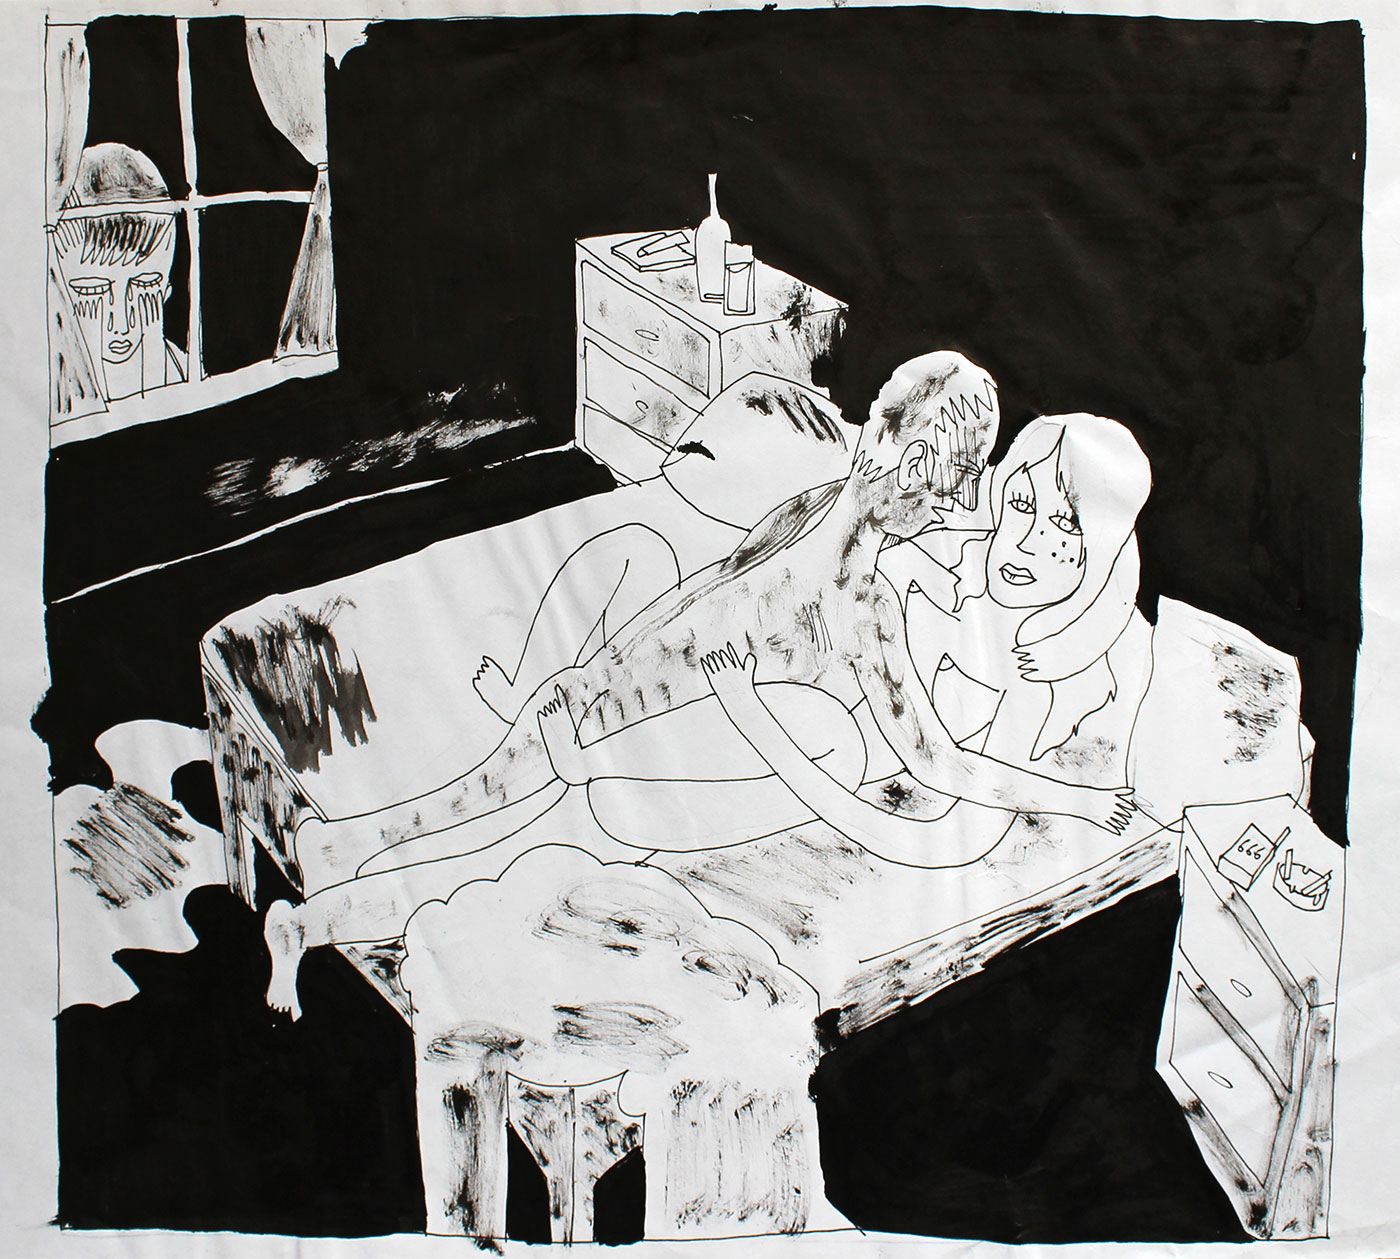 sex mand woman boy looking bed black white strong and expressive art illustrations and drawings, talented Danish illustrator, cartoonist, faverige